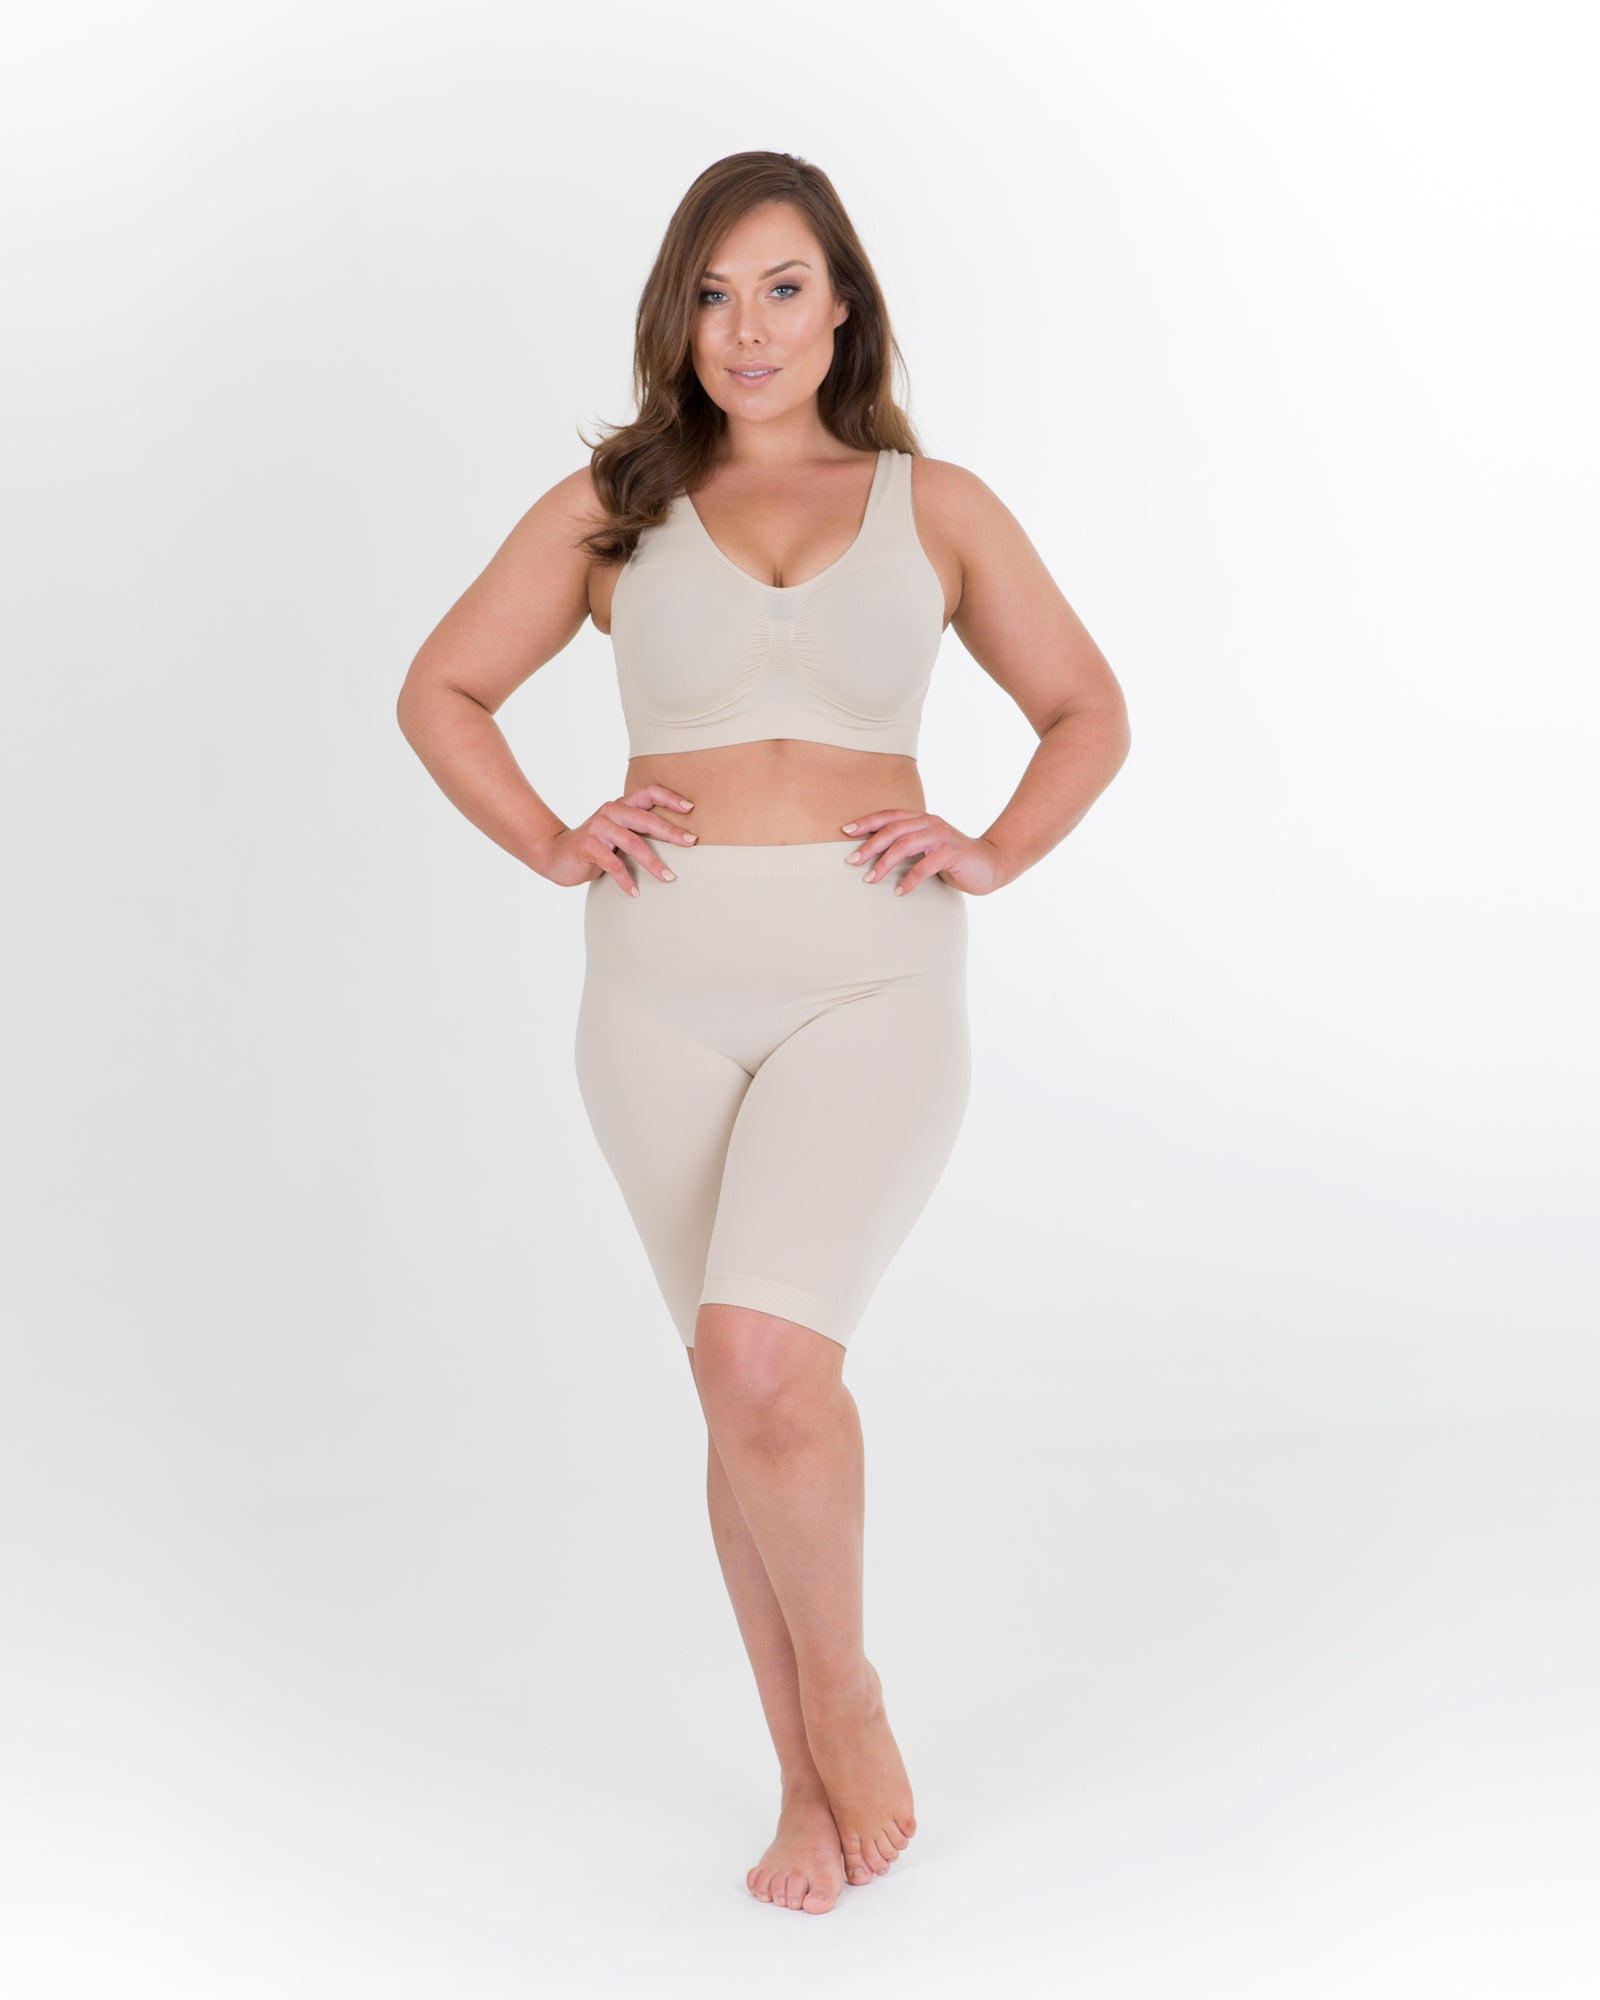 Anti Chafing Shorts Long & Bra Set -Nude  - BUY 2 & SAVE $10